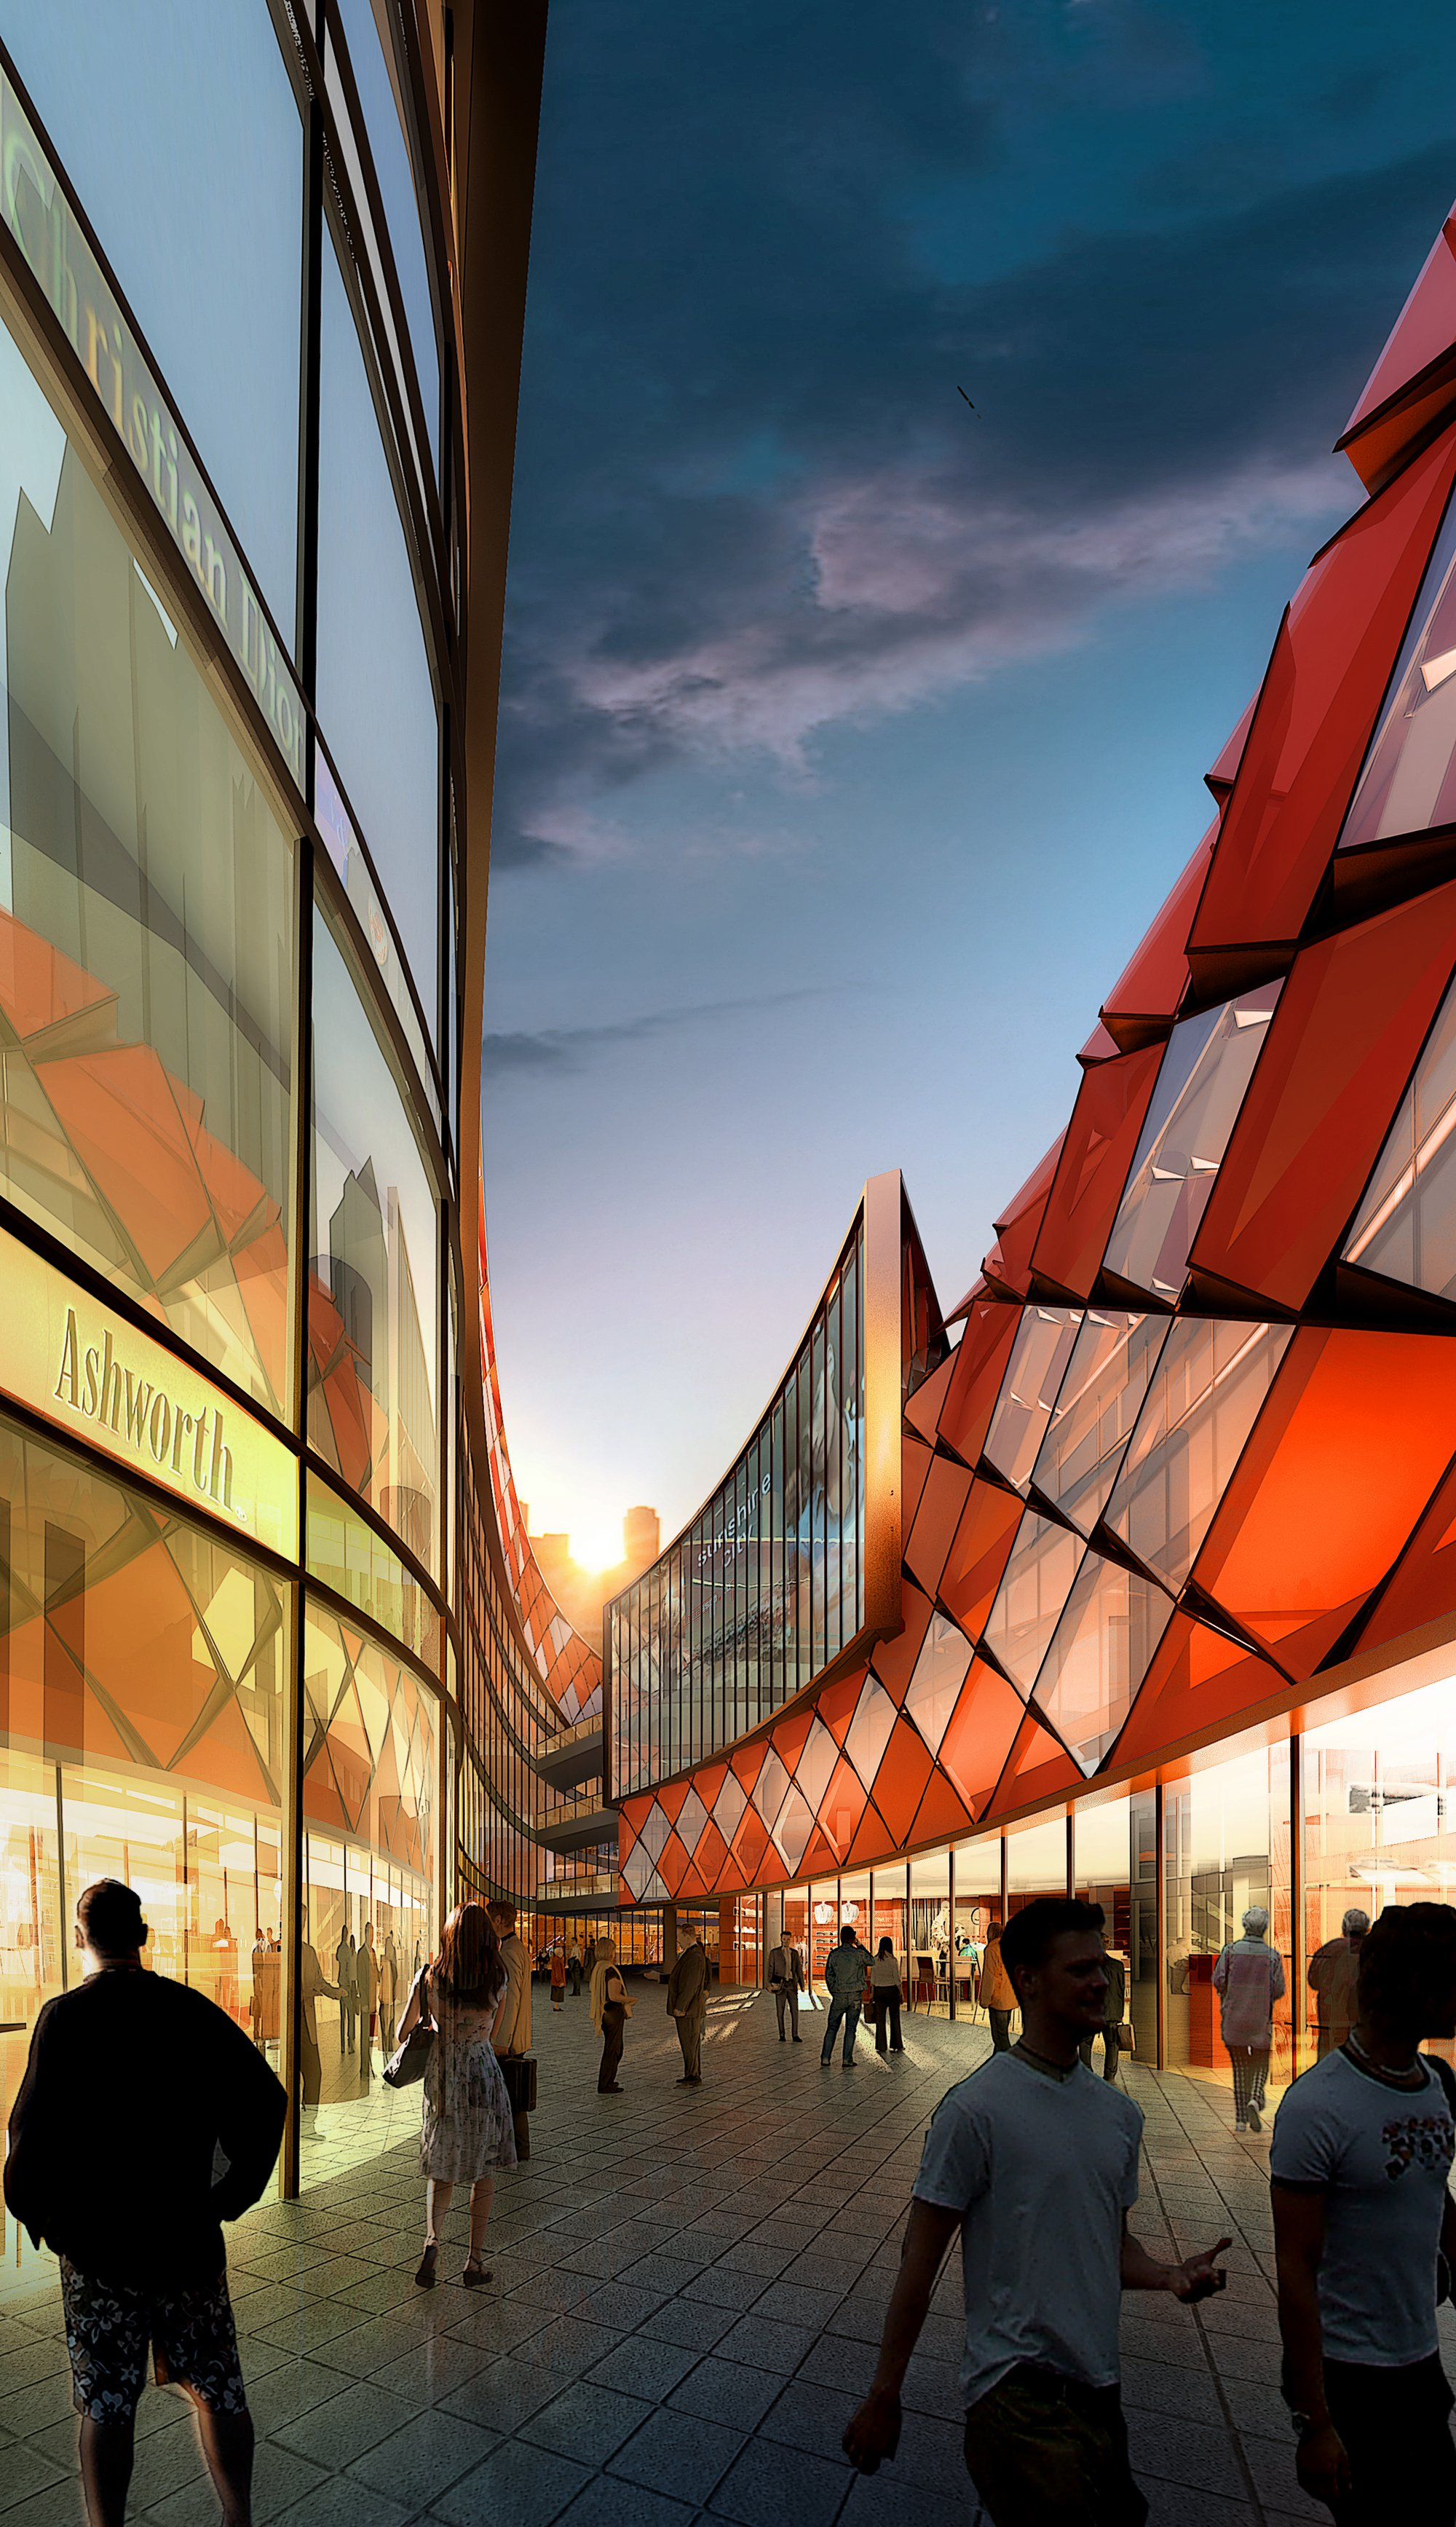 554d2963e58ecece5c000041_sunlay-design-group-s-folklore-inspired-retail-center-will-soon-rise-in-china_1-